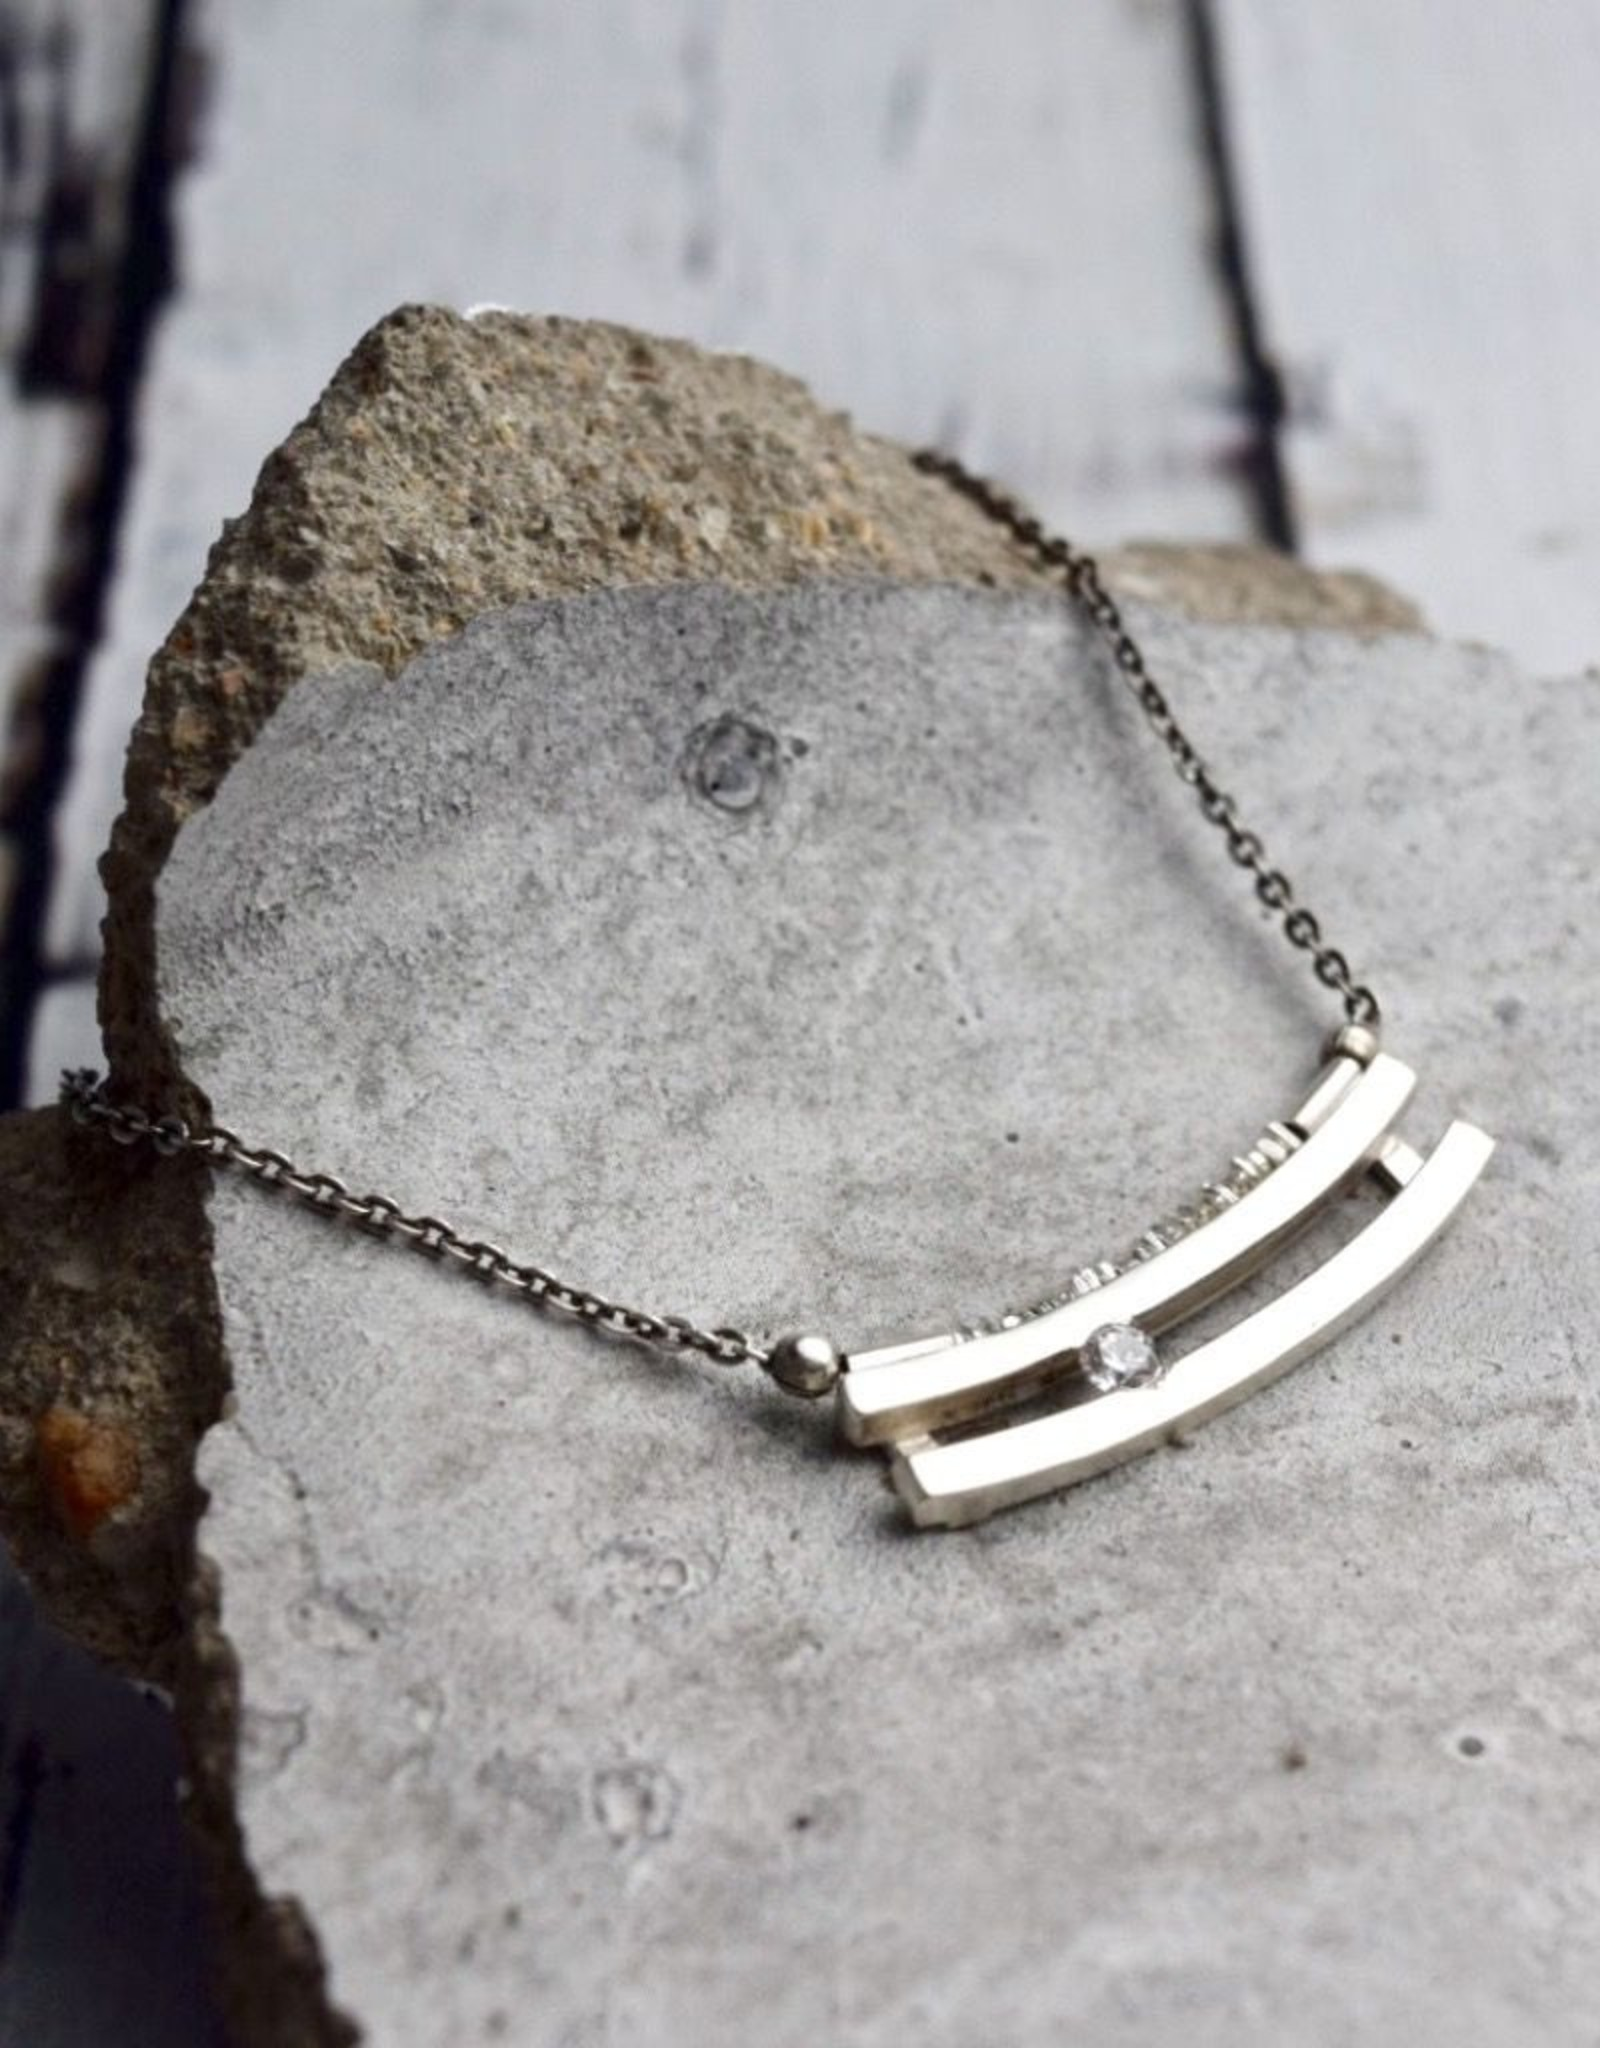 Handmade Necklace with Sterling Silver Bar Pendant with flsuh set white CZ on Chain